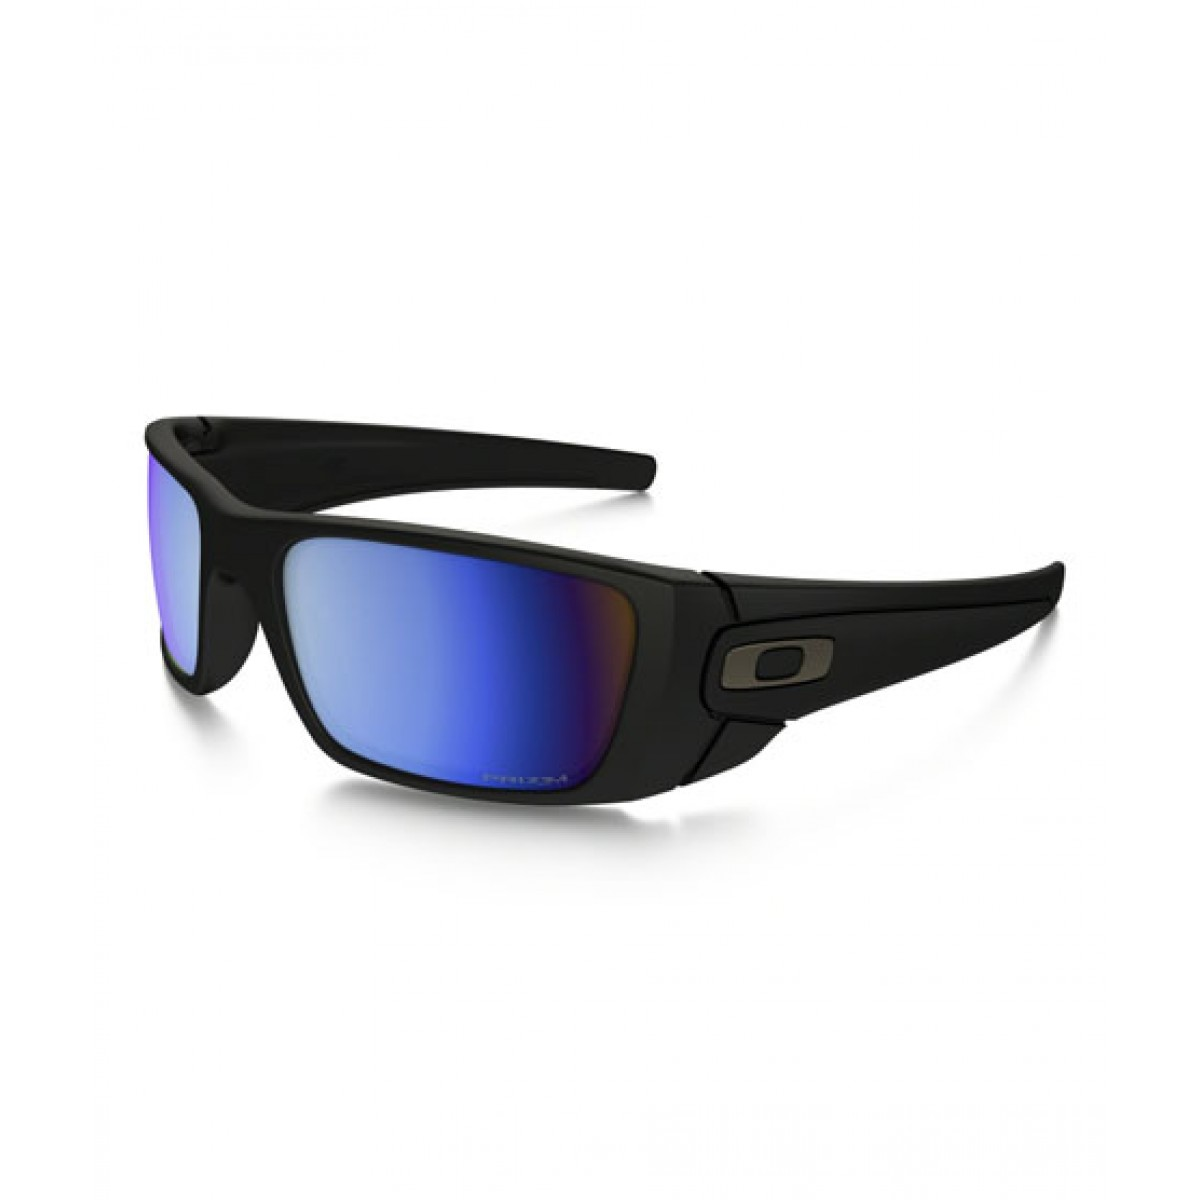 9e7a52ba60c Oakley Polarized Men s Sunglasses Price in Pakistan